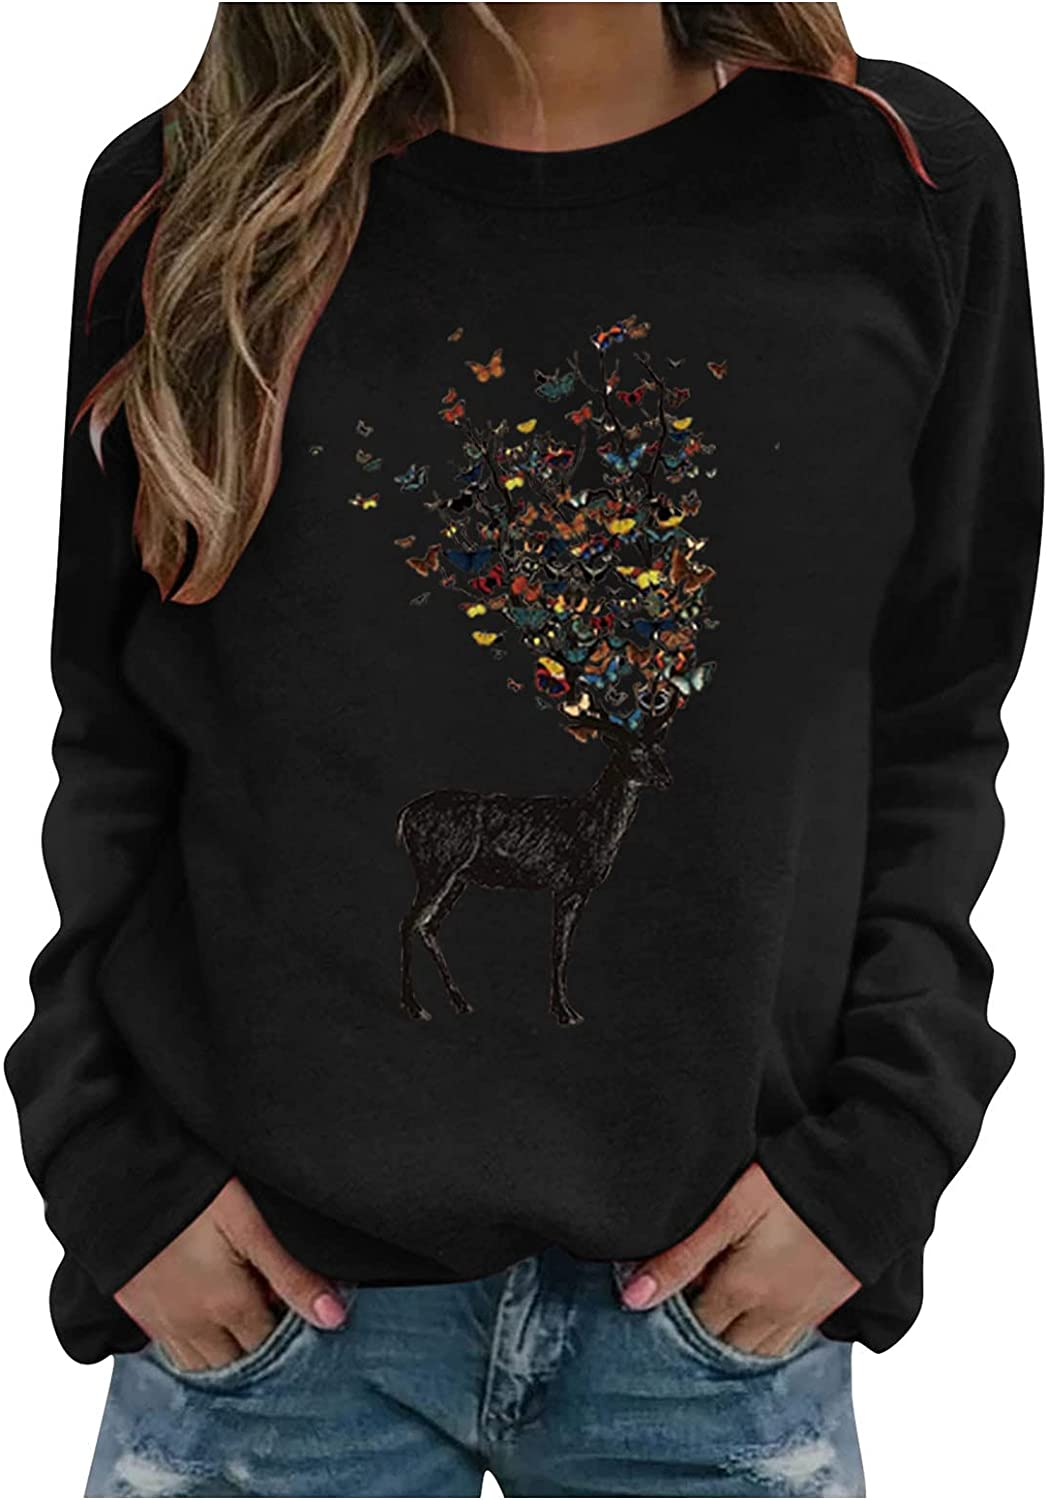 Jaqqra Sweatshirts for Women Crewneck Graphic Long Sleeve Vintage Printed Casual Loose Pullover Sweaters Shirts Tops